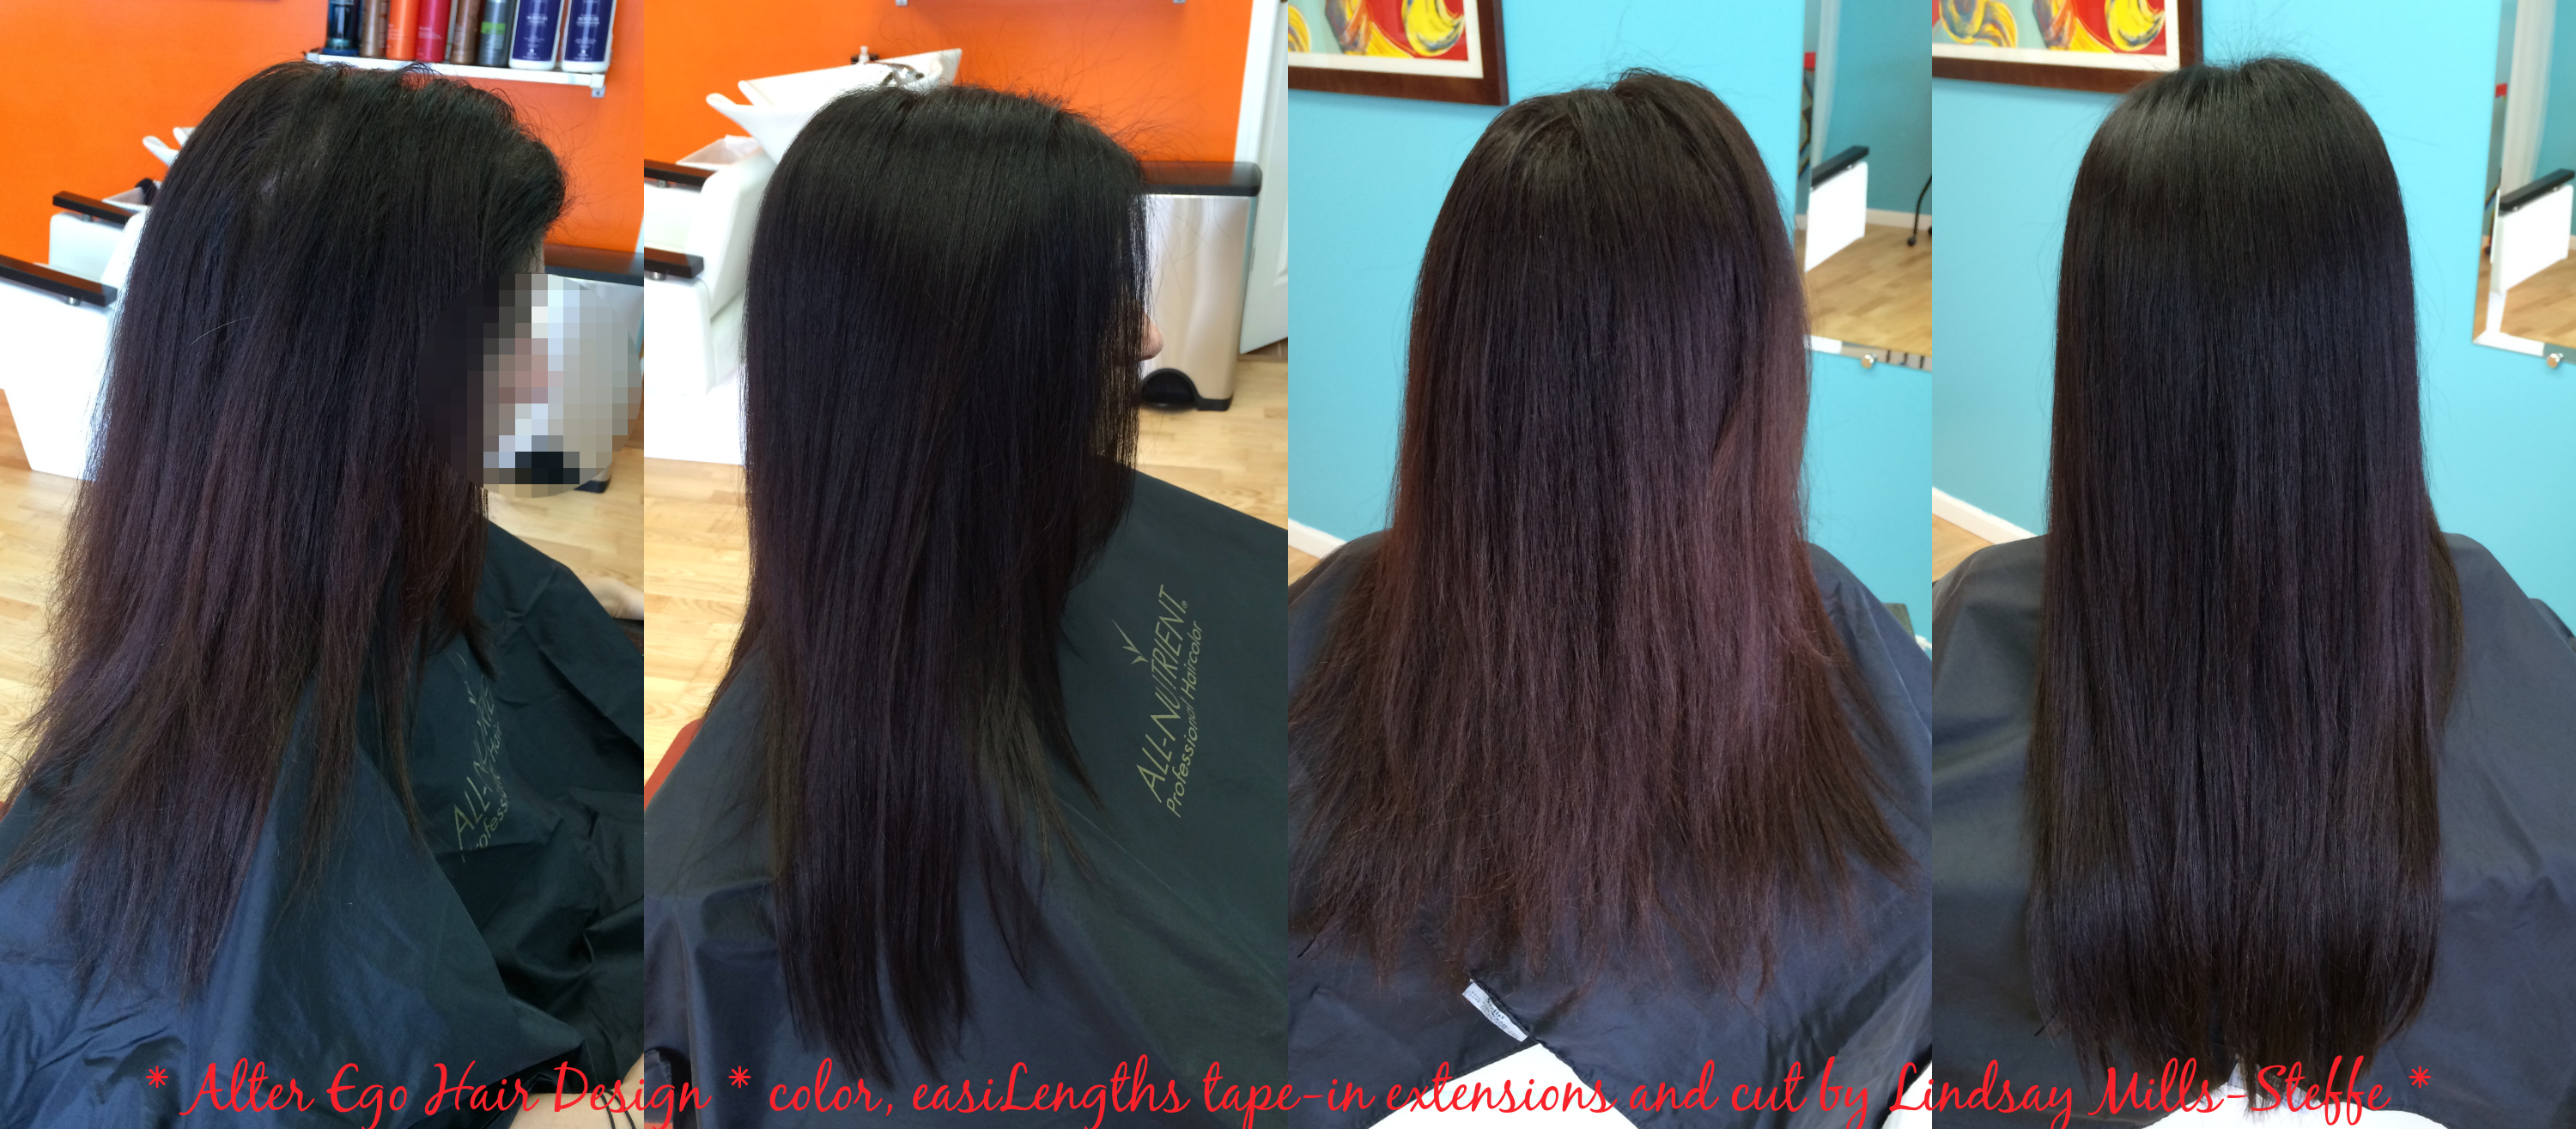 Try The Best Hair Extensions For Thin Hair In Chicago